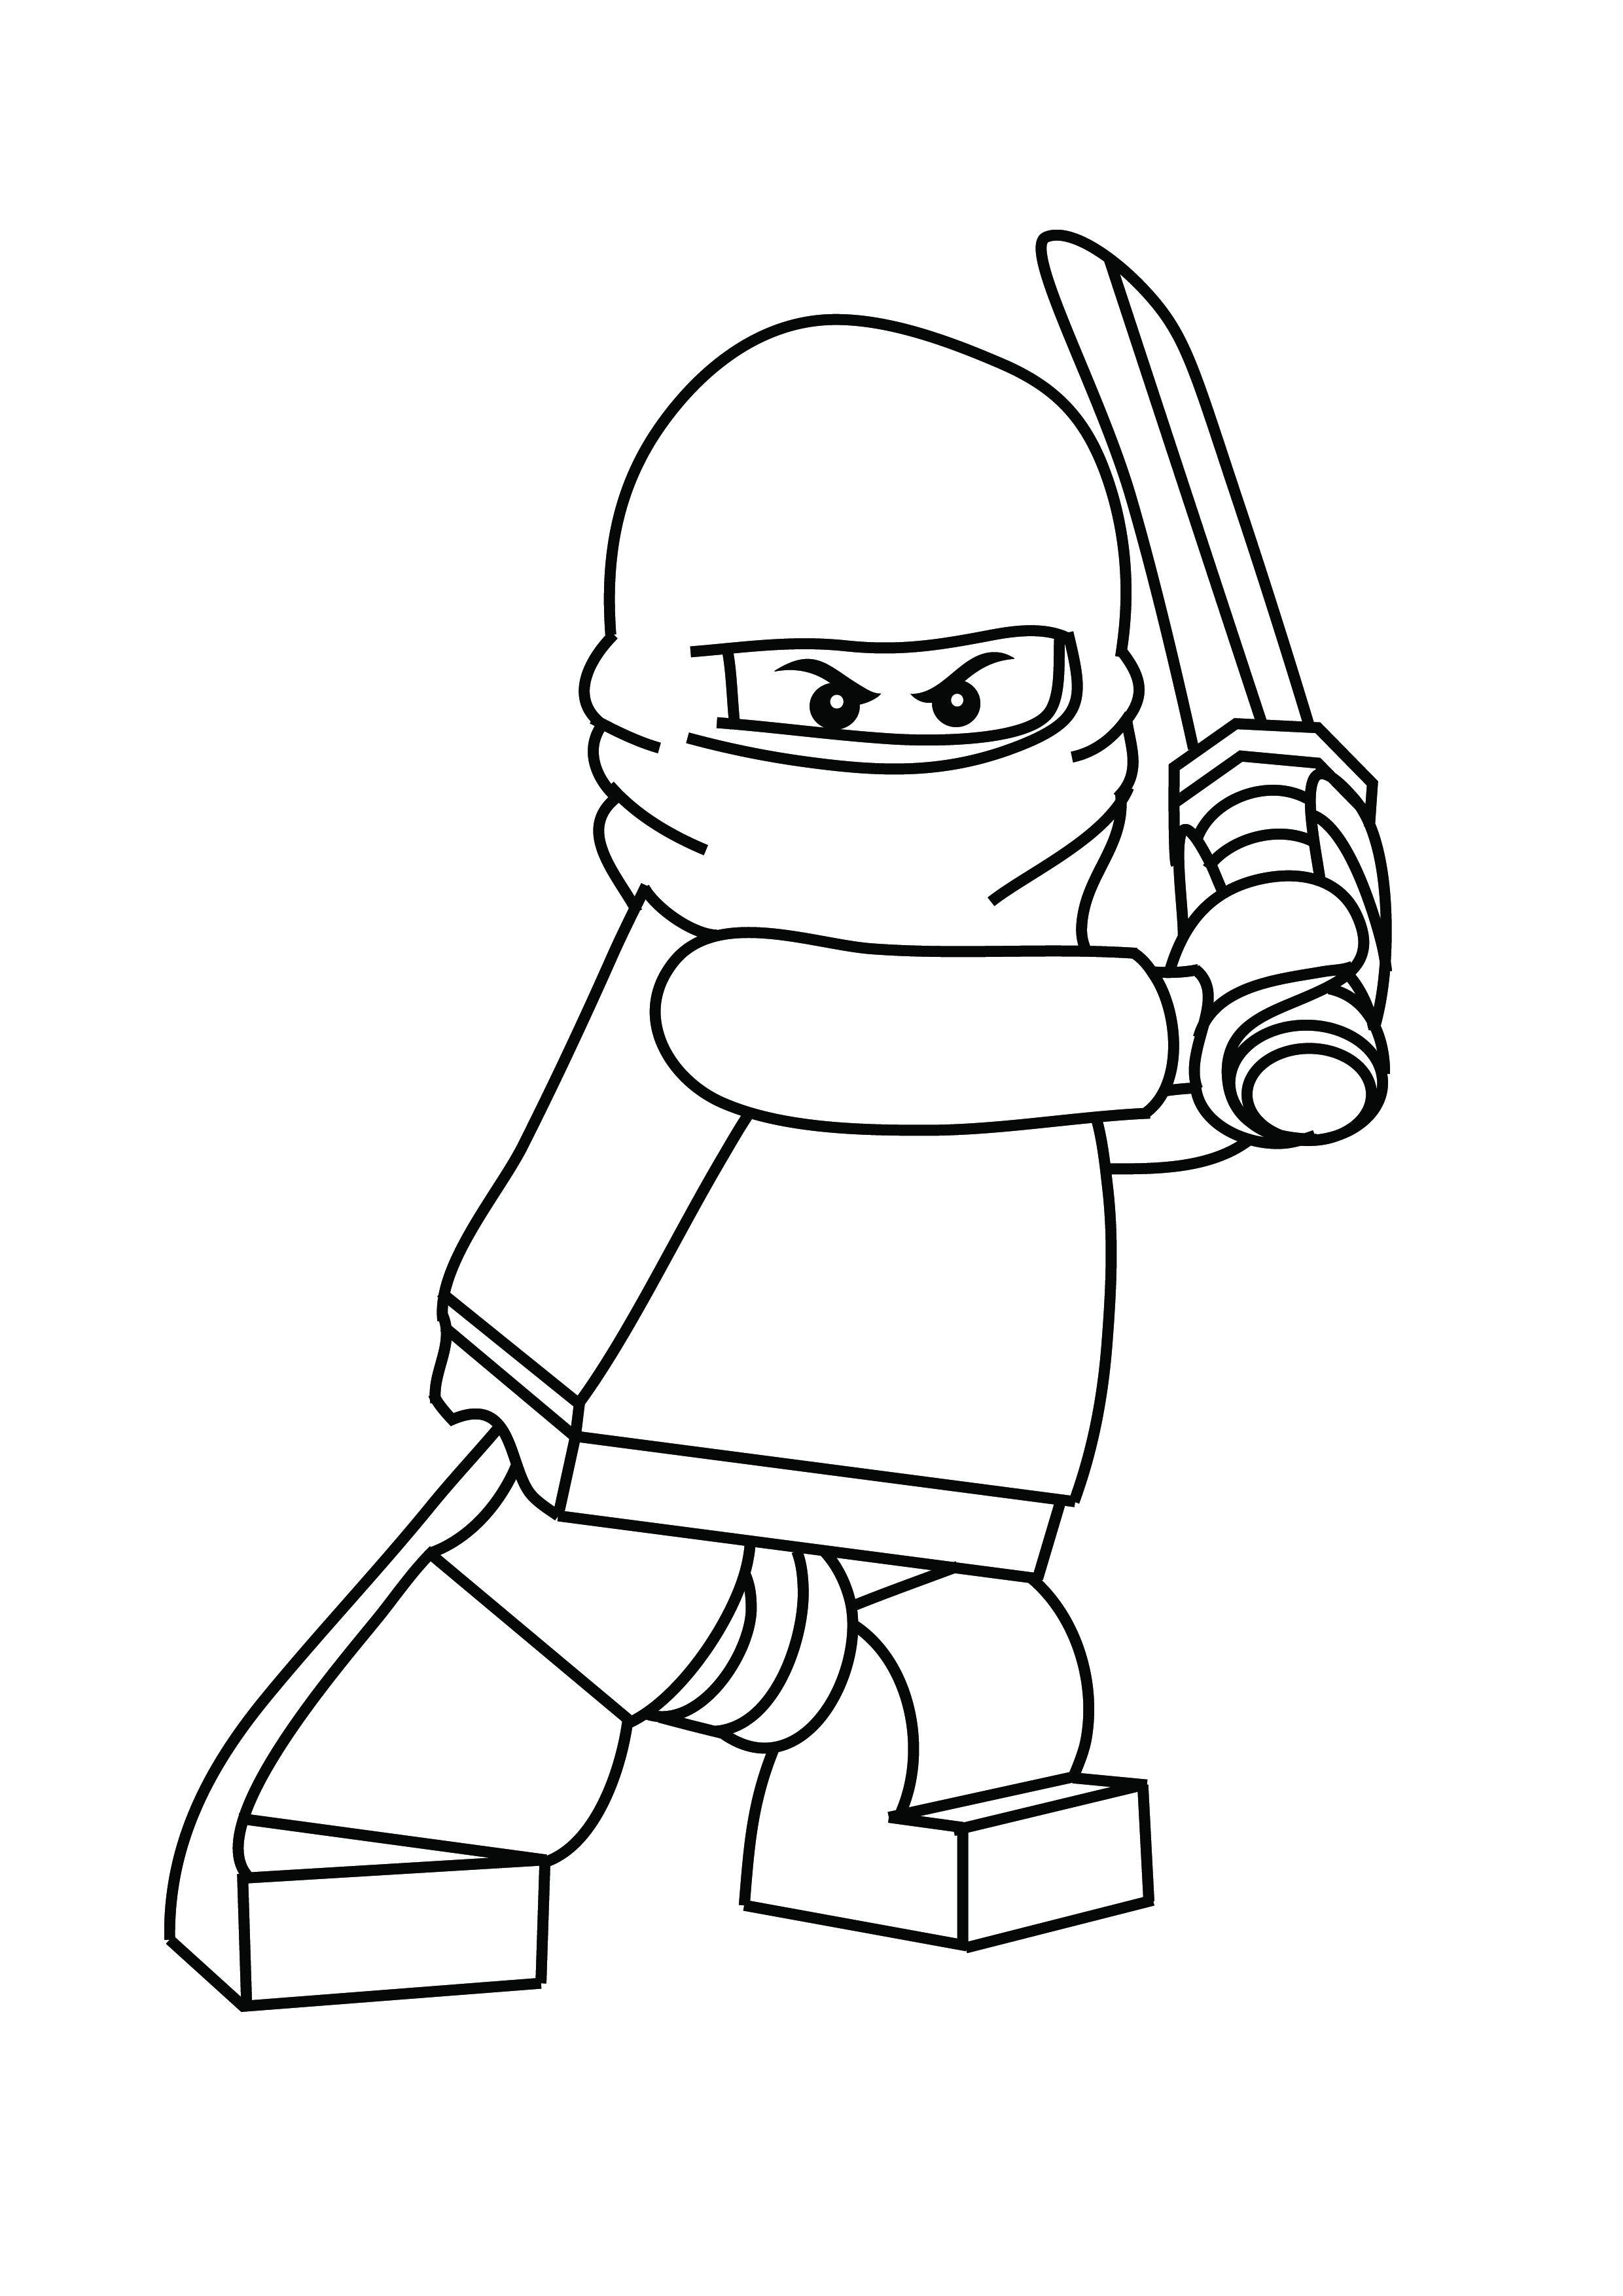 coloring ninja lego free printable lego coloring pages for kids lego ninja coloring